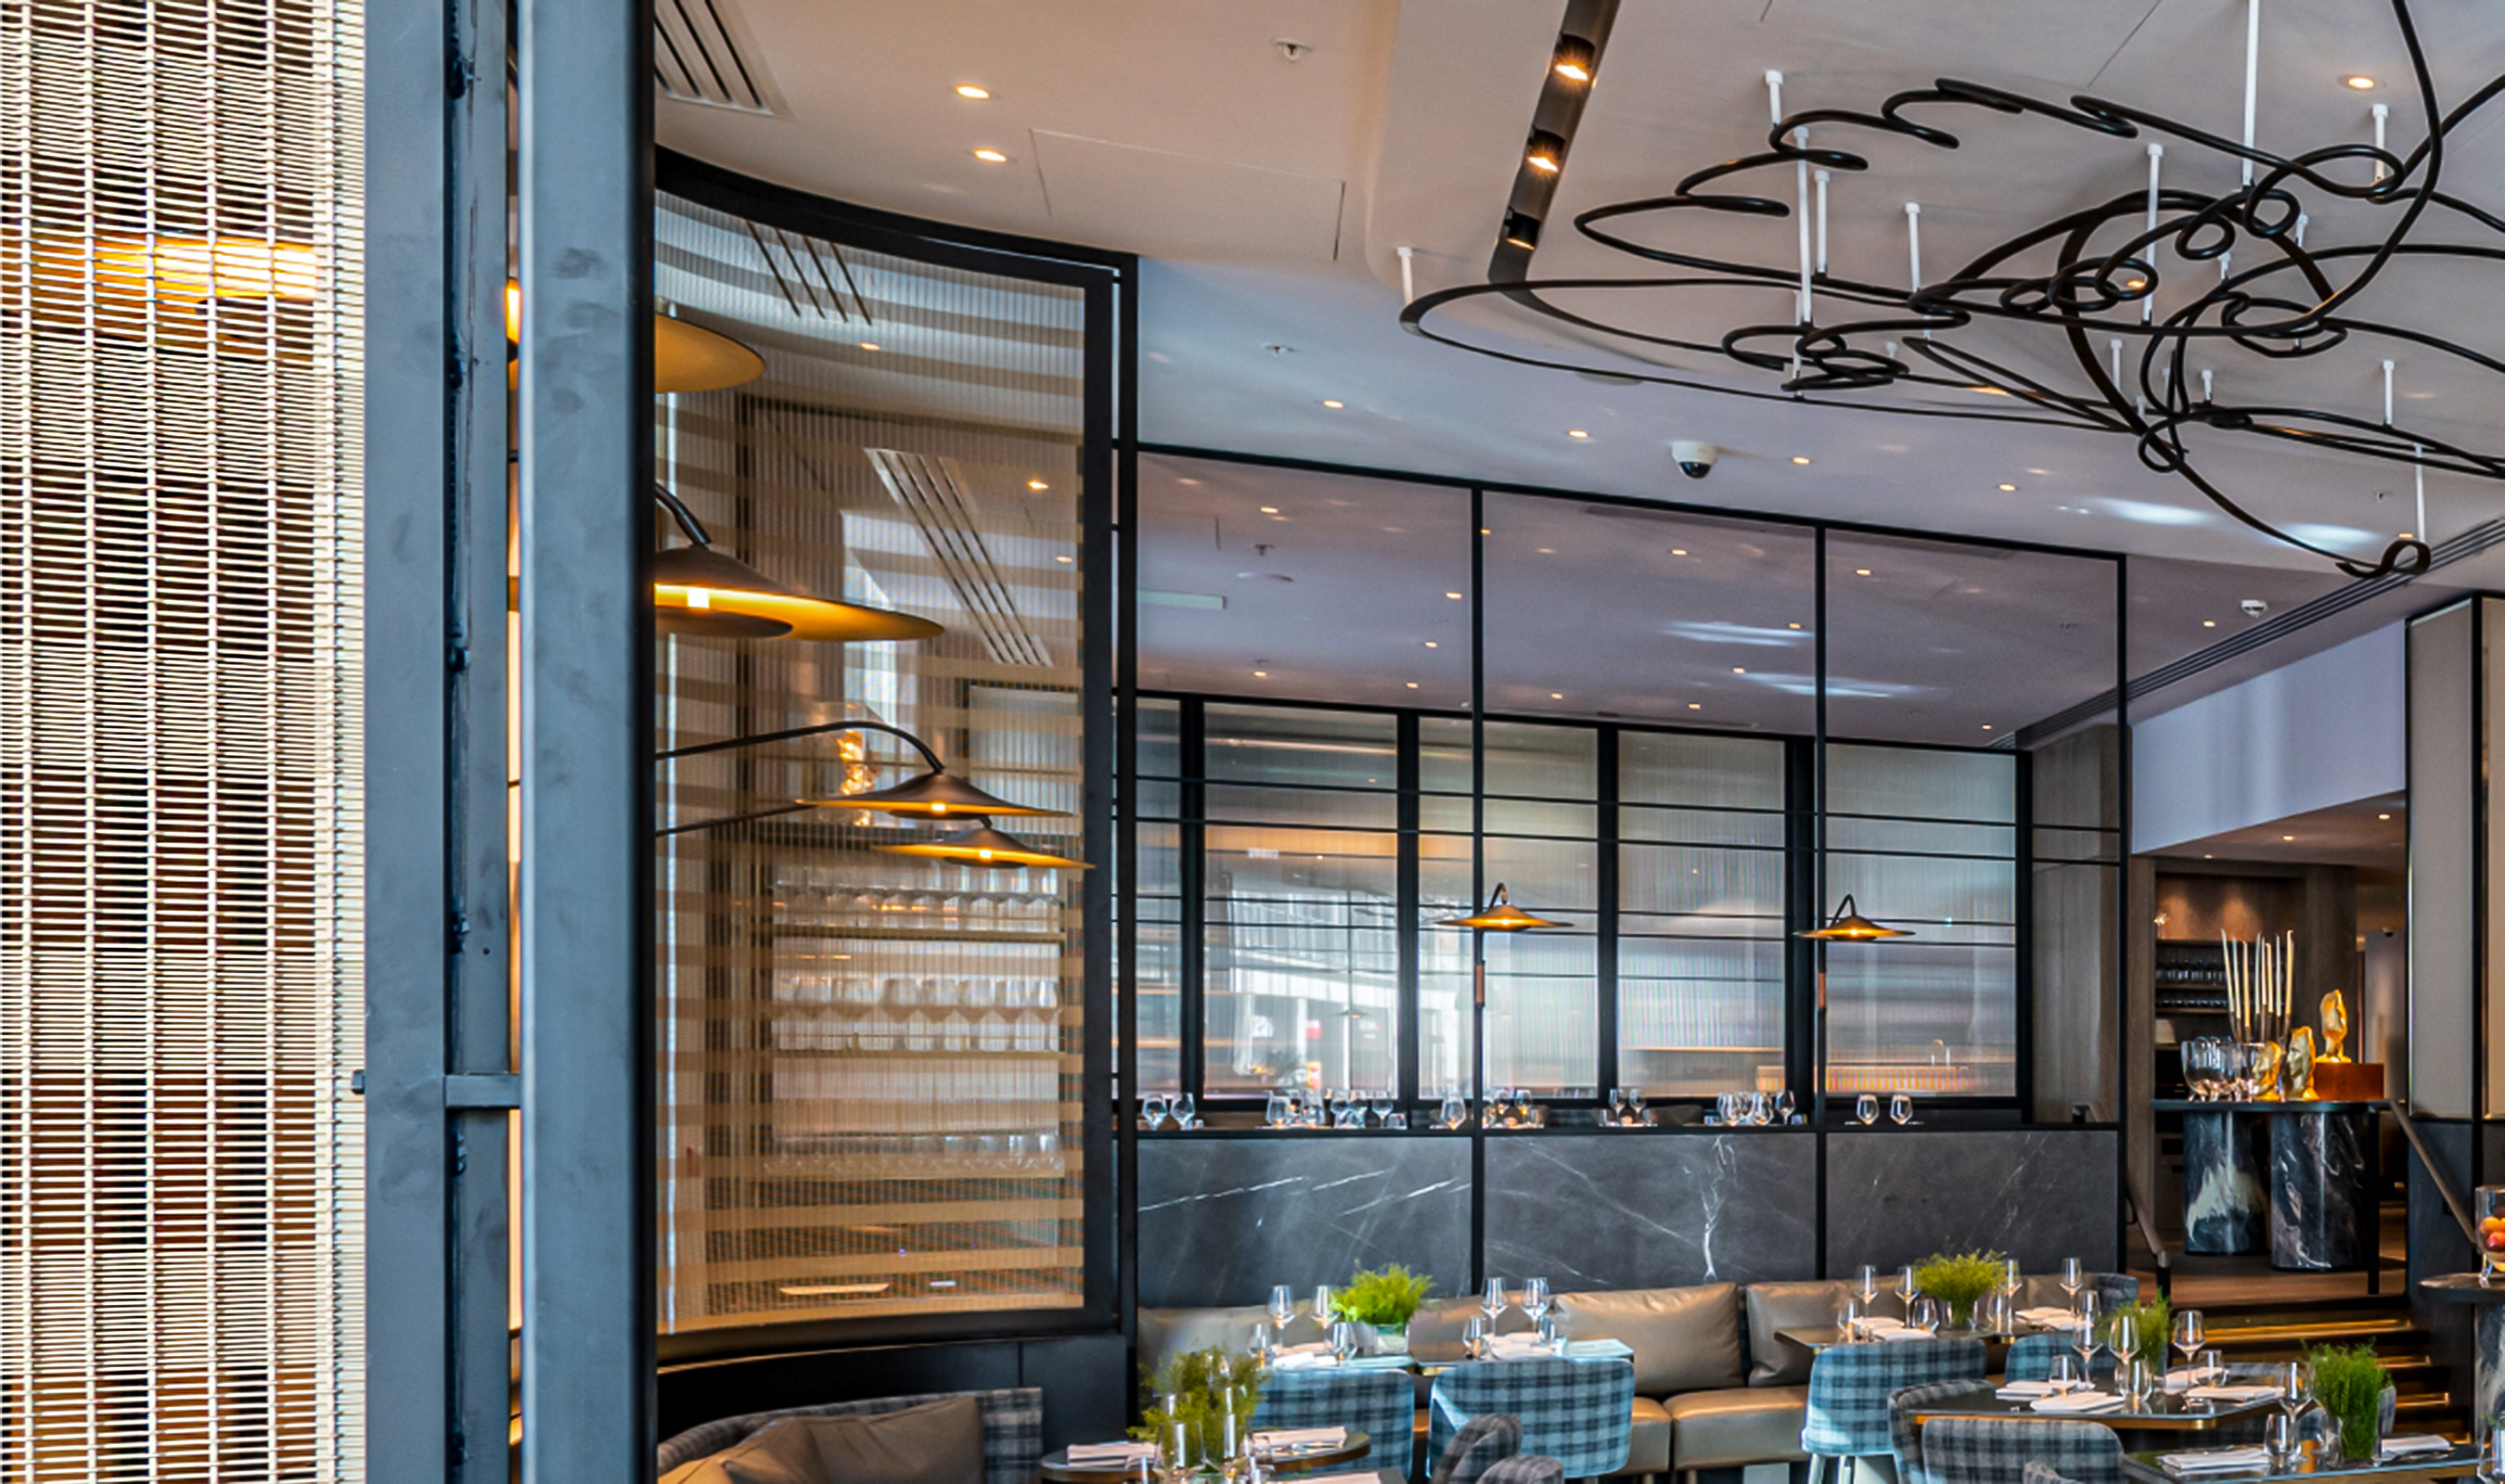 The woven wire mesh space dividers in this London restaurant add to the luxury ambiance of the space.